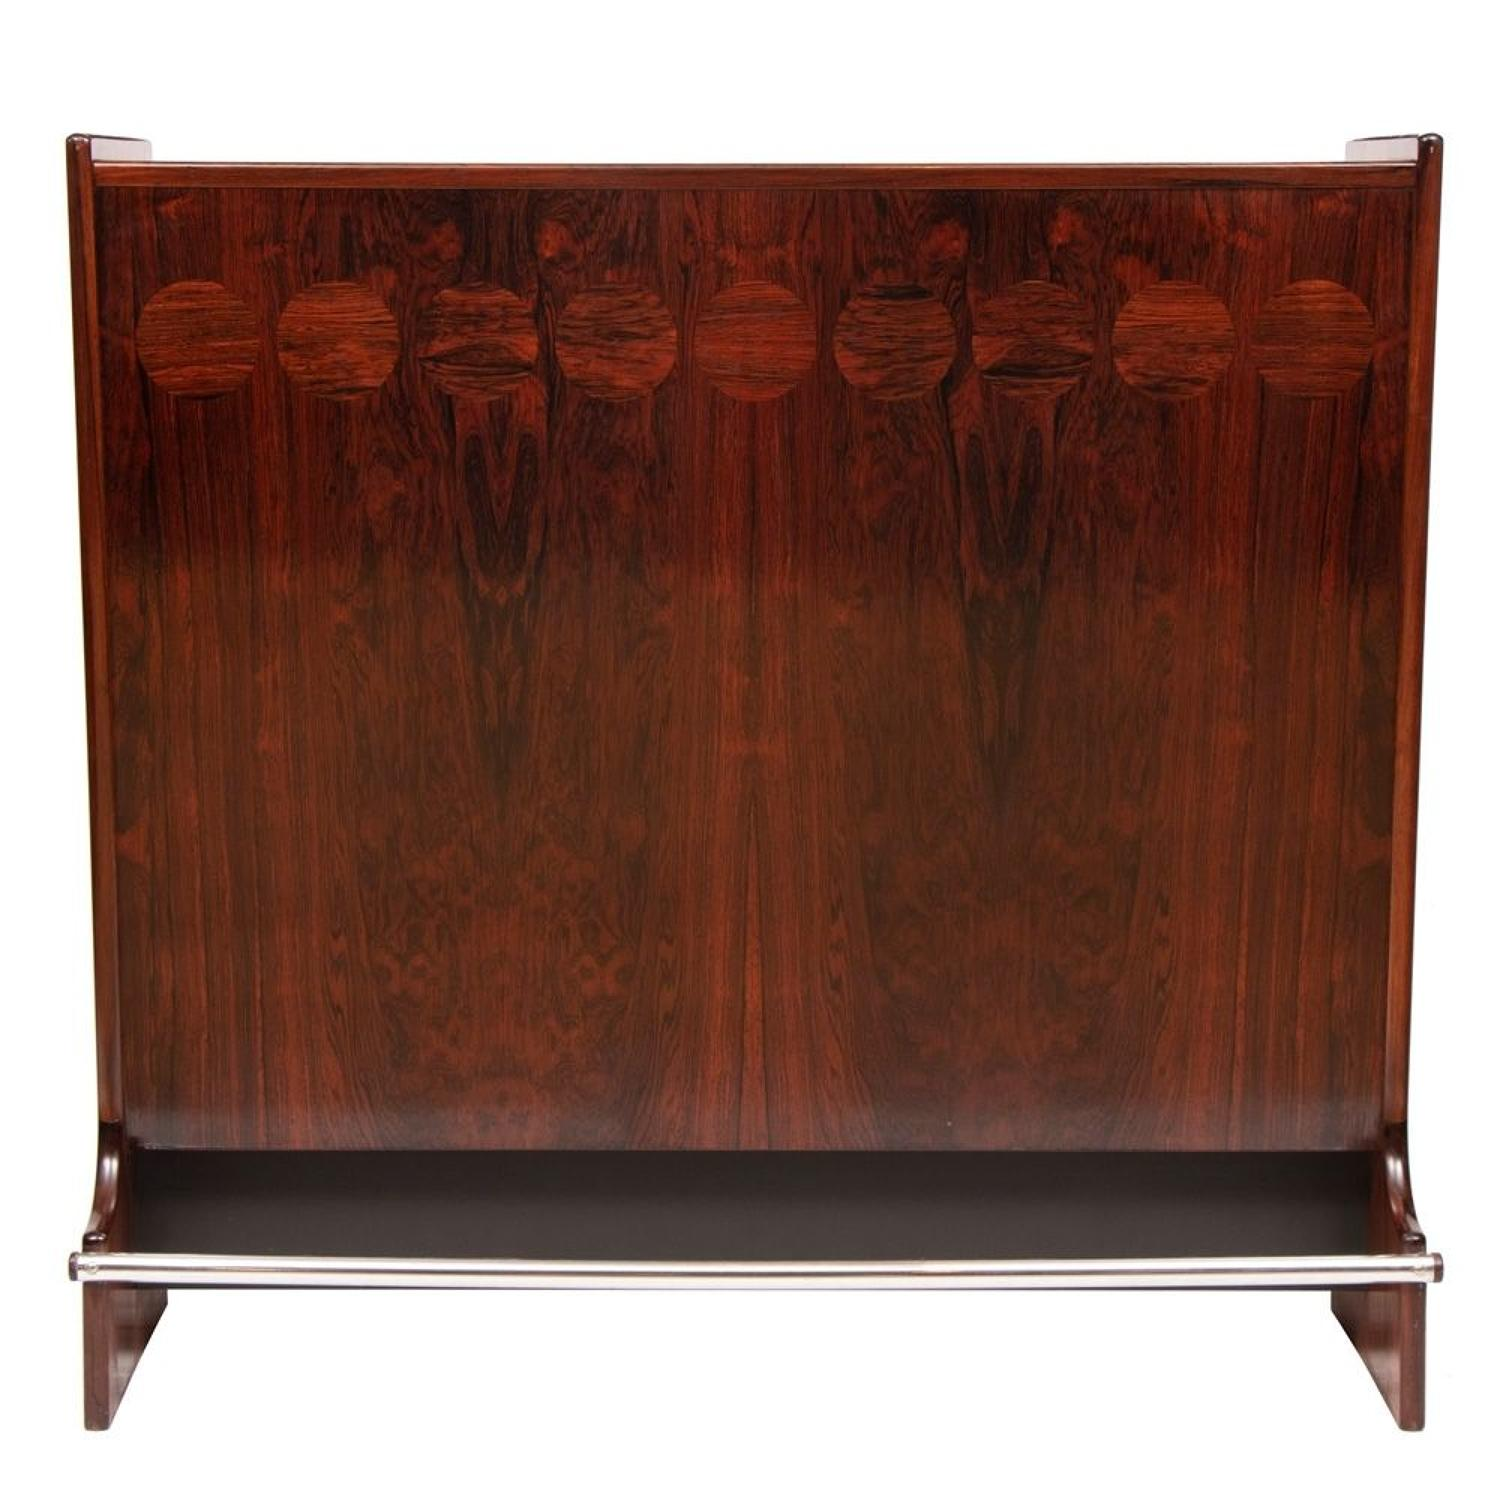 Danish Midcentury Rosewood Bar